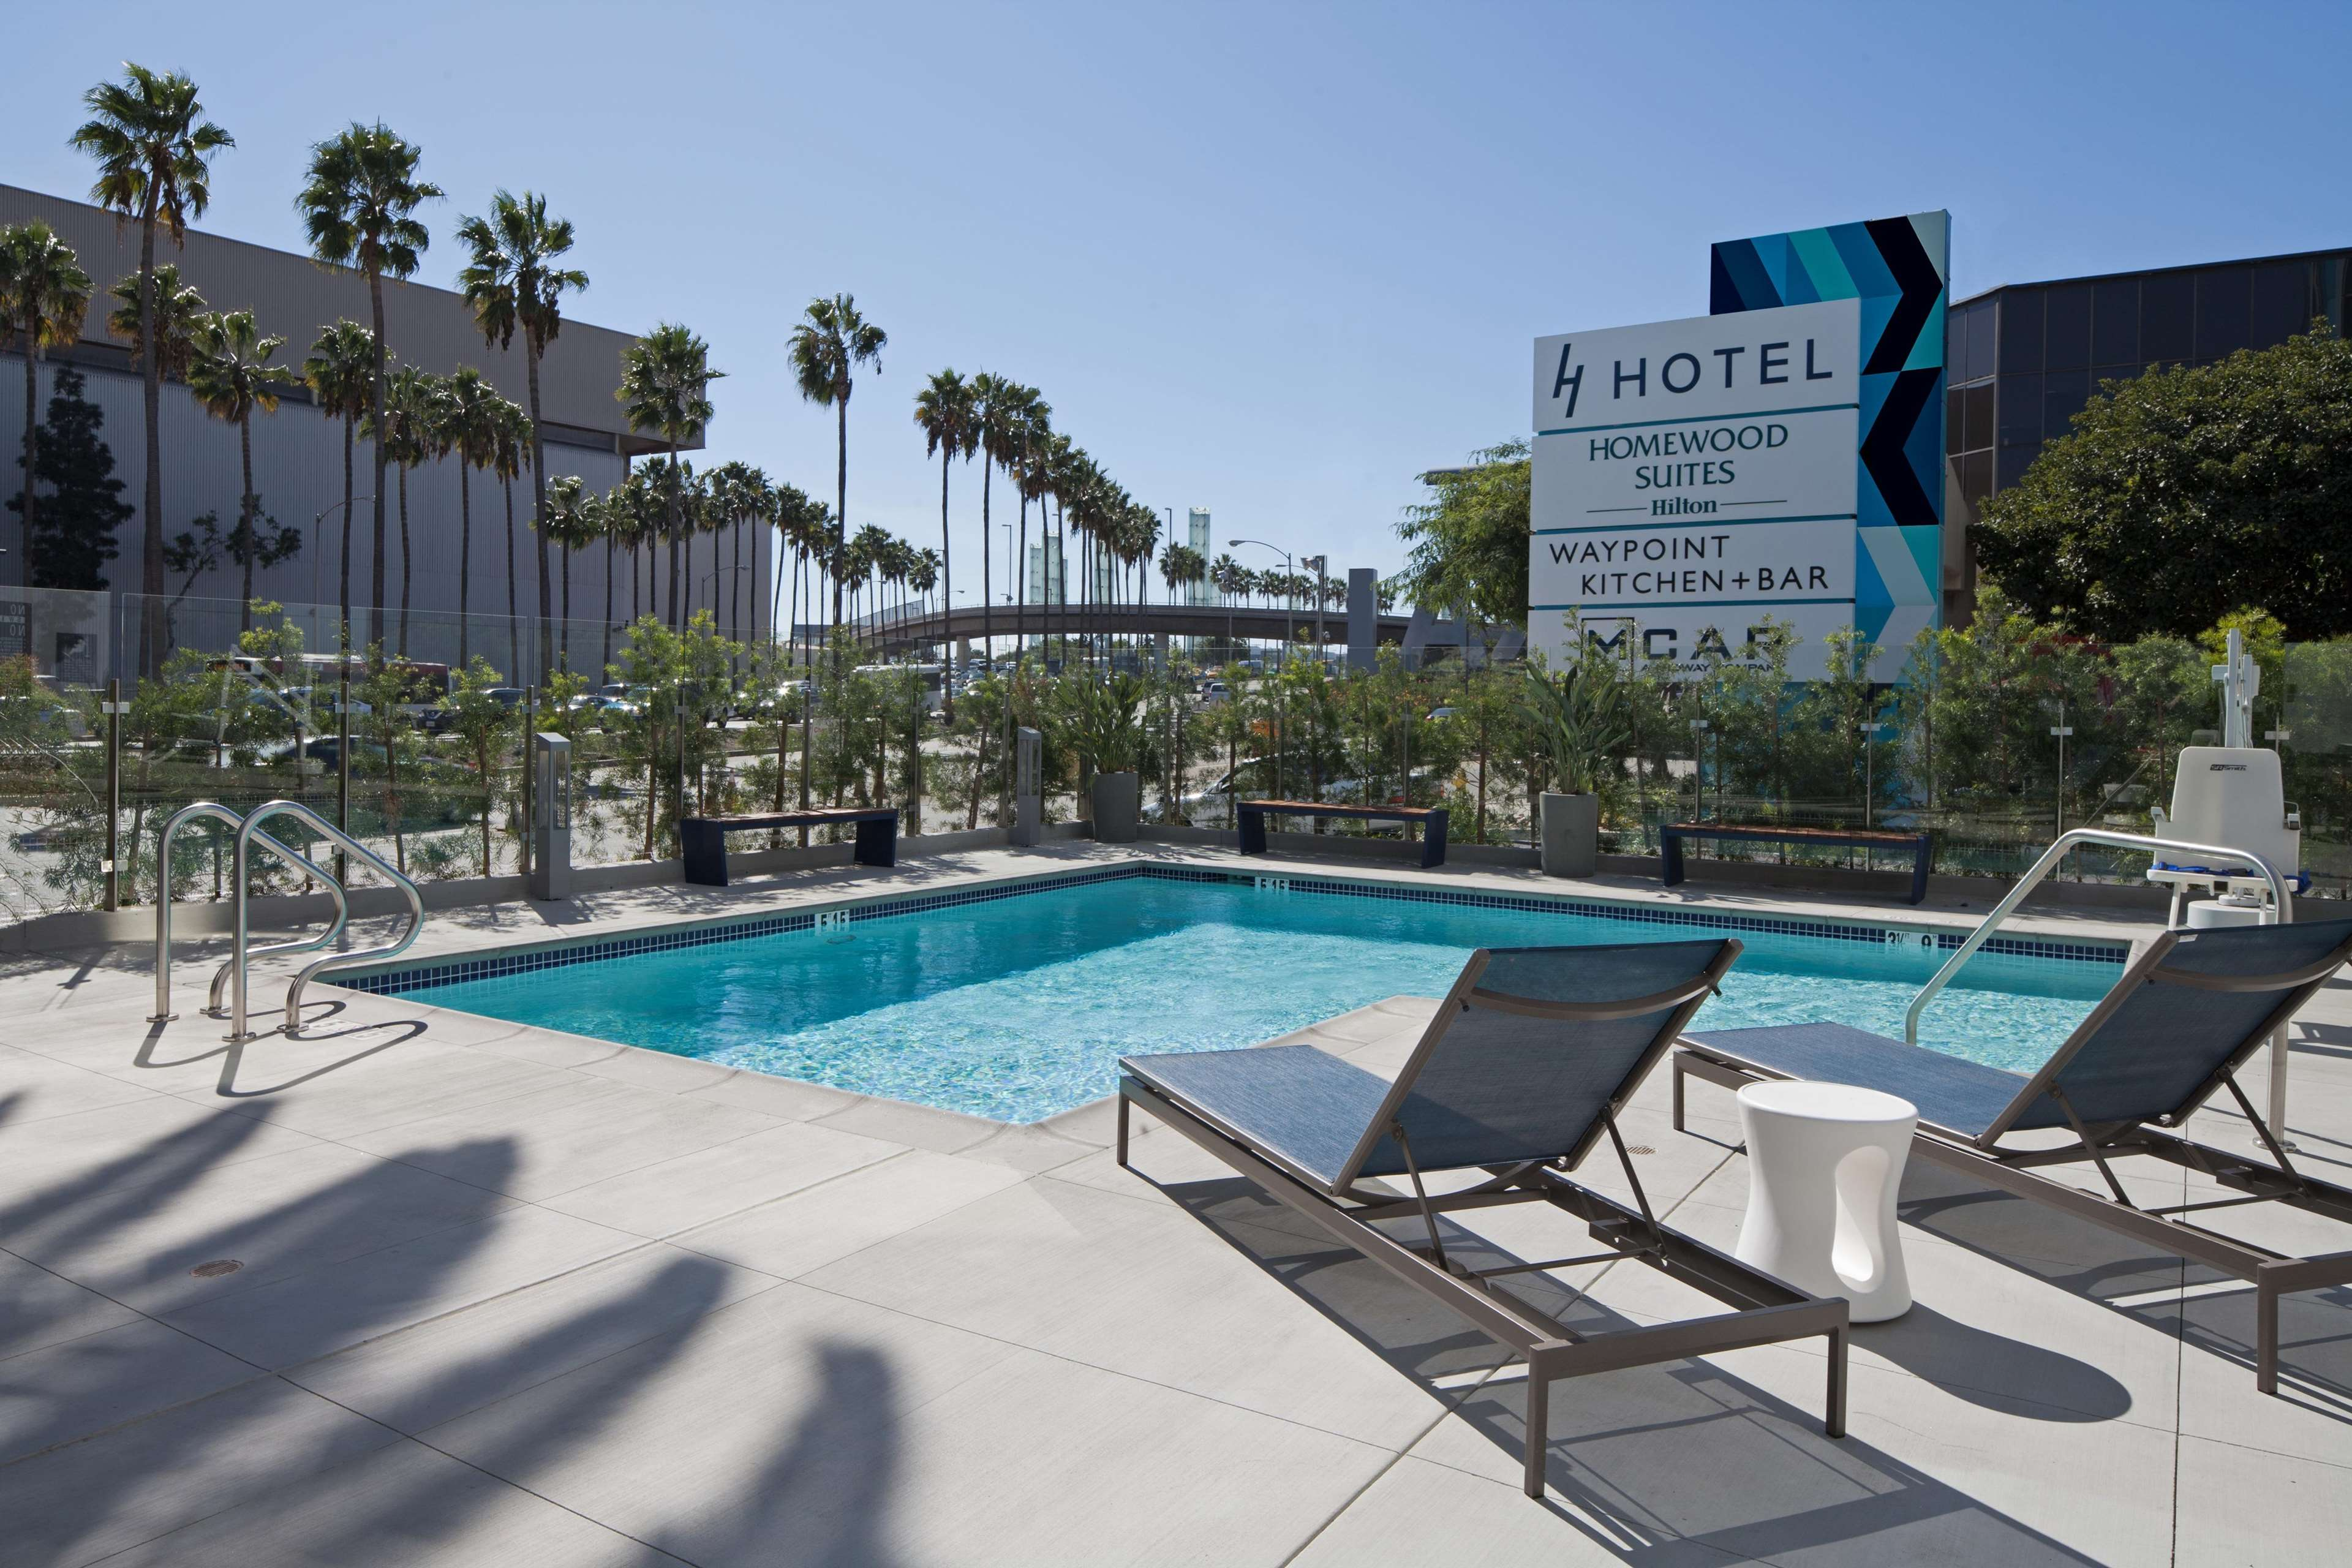 Homewood Suites by Hilton Los Angeles International Airport image 1